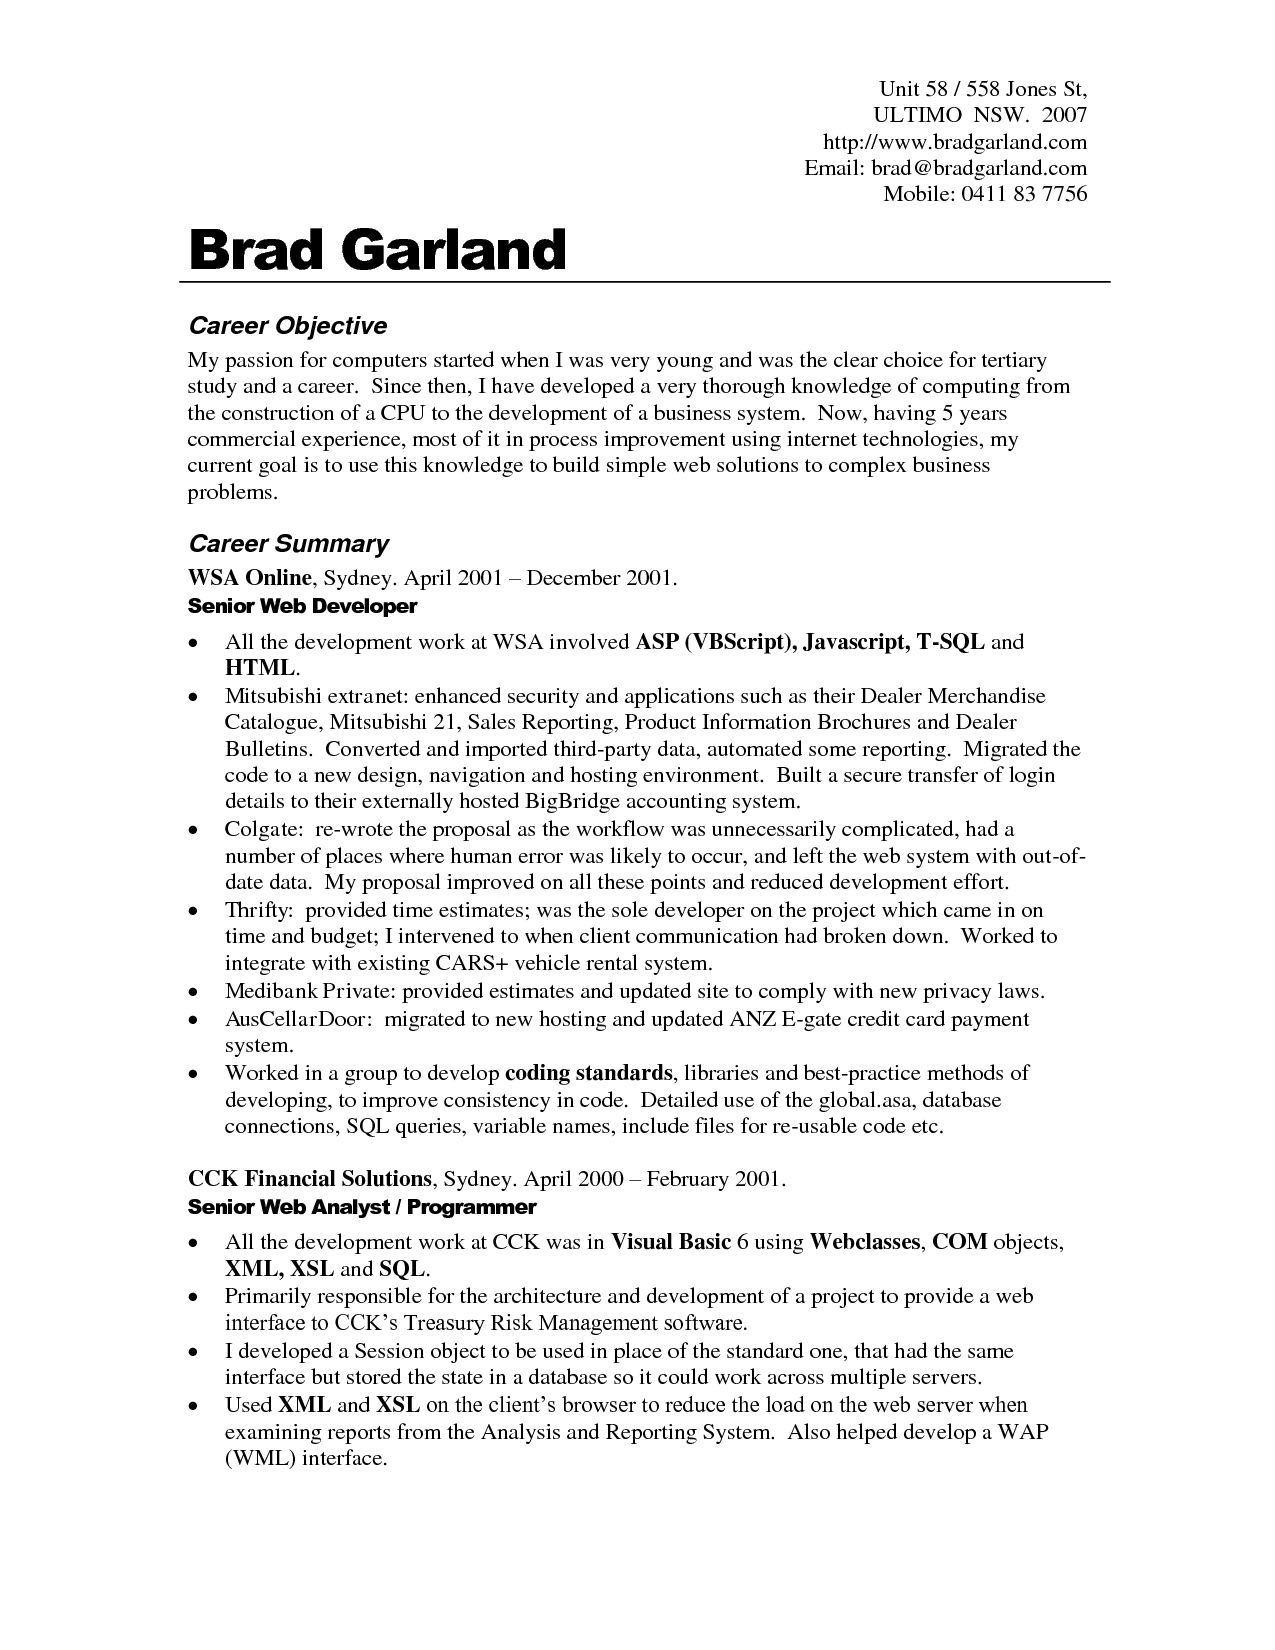 Line Cook Resumes Resume Examples Job Objective  Sample Resume Entry Level And .